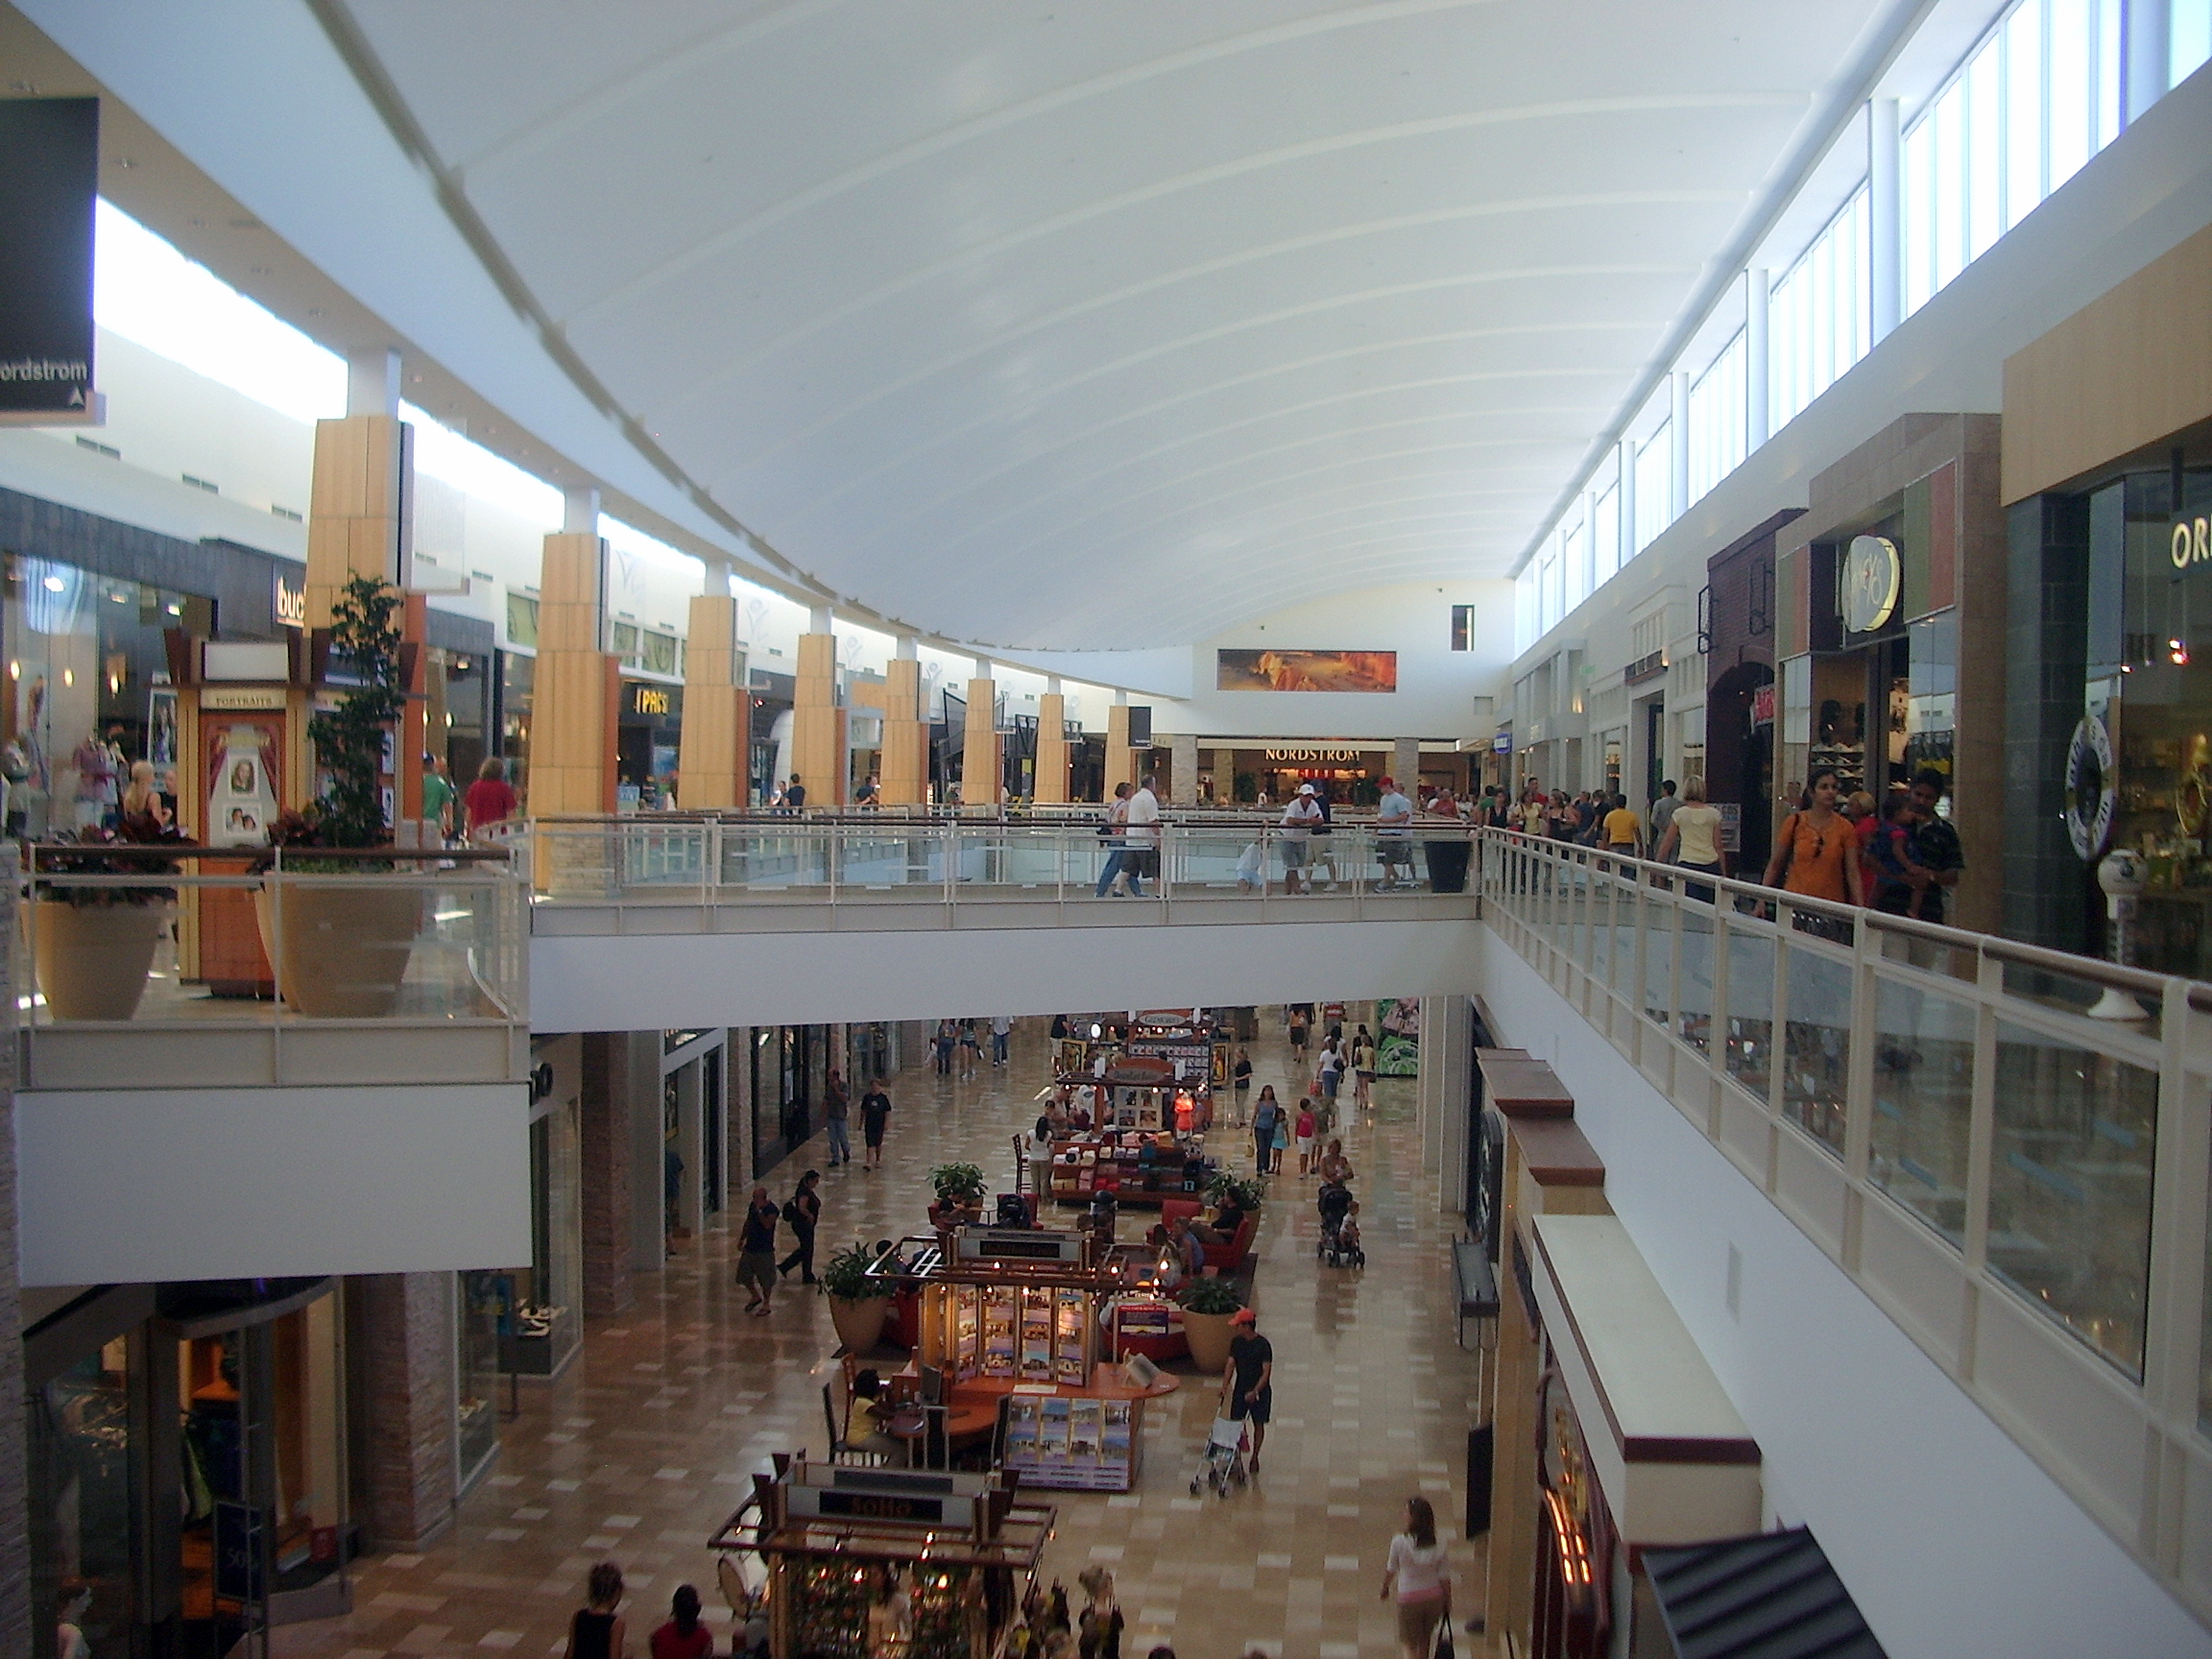 Local Careers: Find all jobs in Phoenix. Refine your Chandler Mall job search to find new opportunities in Phoenix Arizona. Refine your Chandler Mall job search to find new opportunities in Phoenix Arizona.